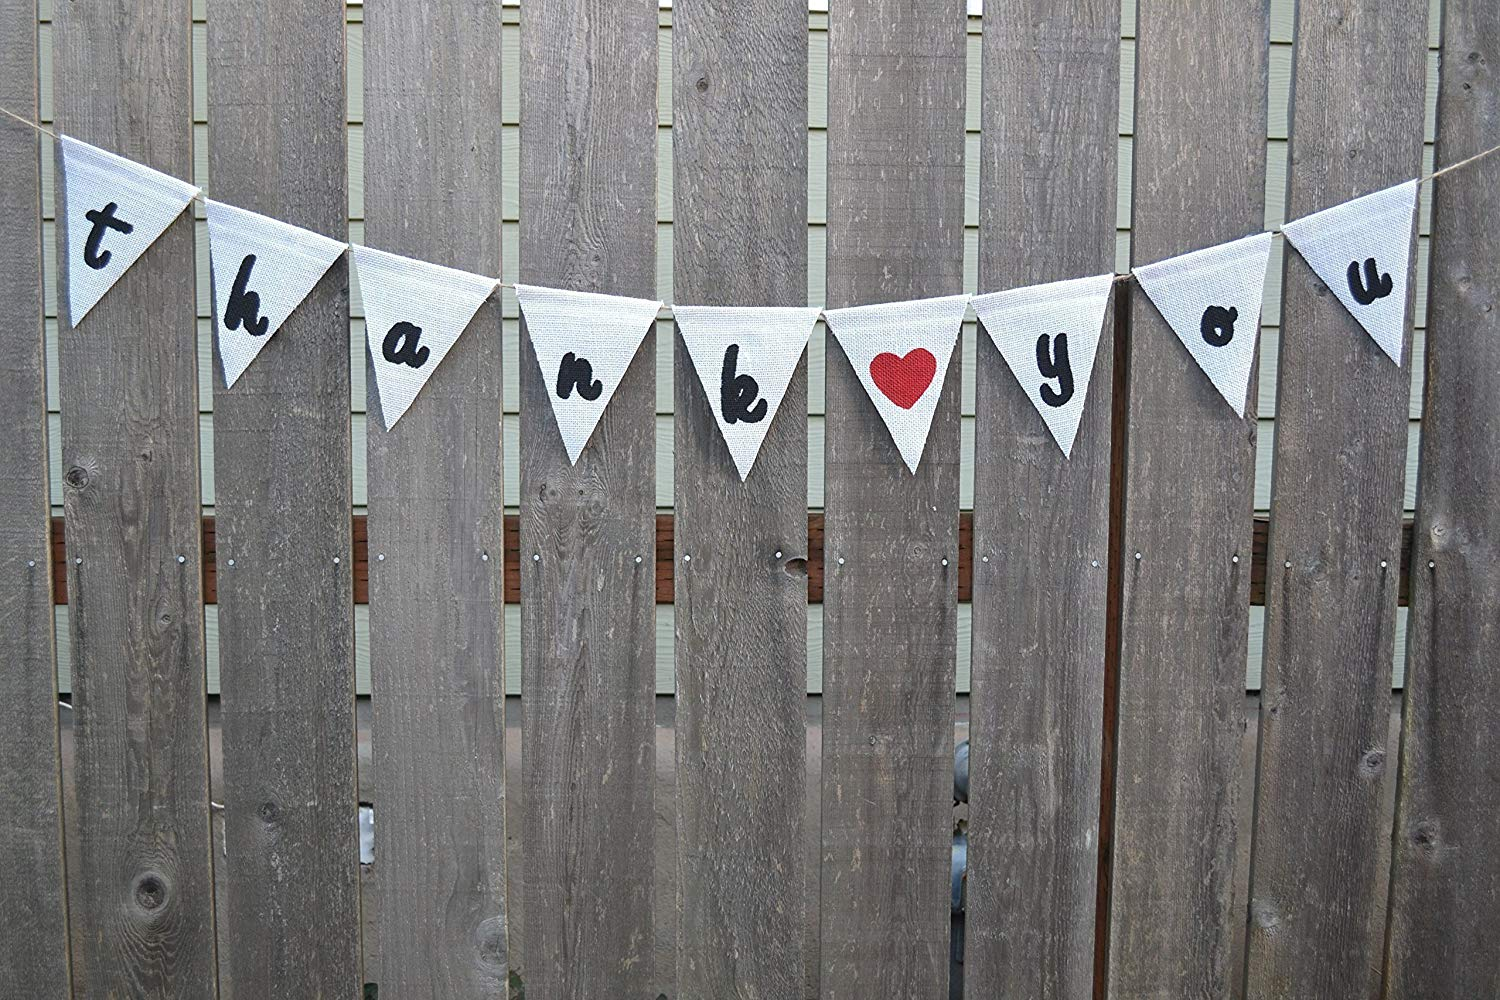 Wedding Banners and Signs, Thank you Burlap Banner, Thank you Cards, Wedding Reception Banner, Party Banner Bunting, Thanks bunting, Photography Props